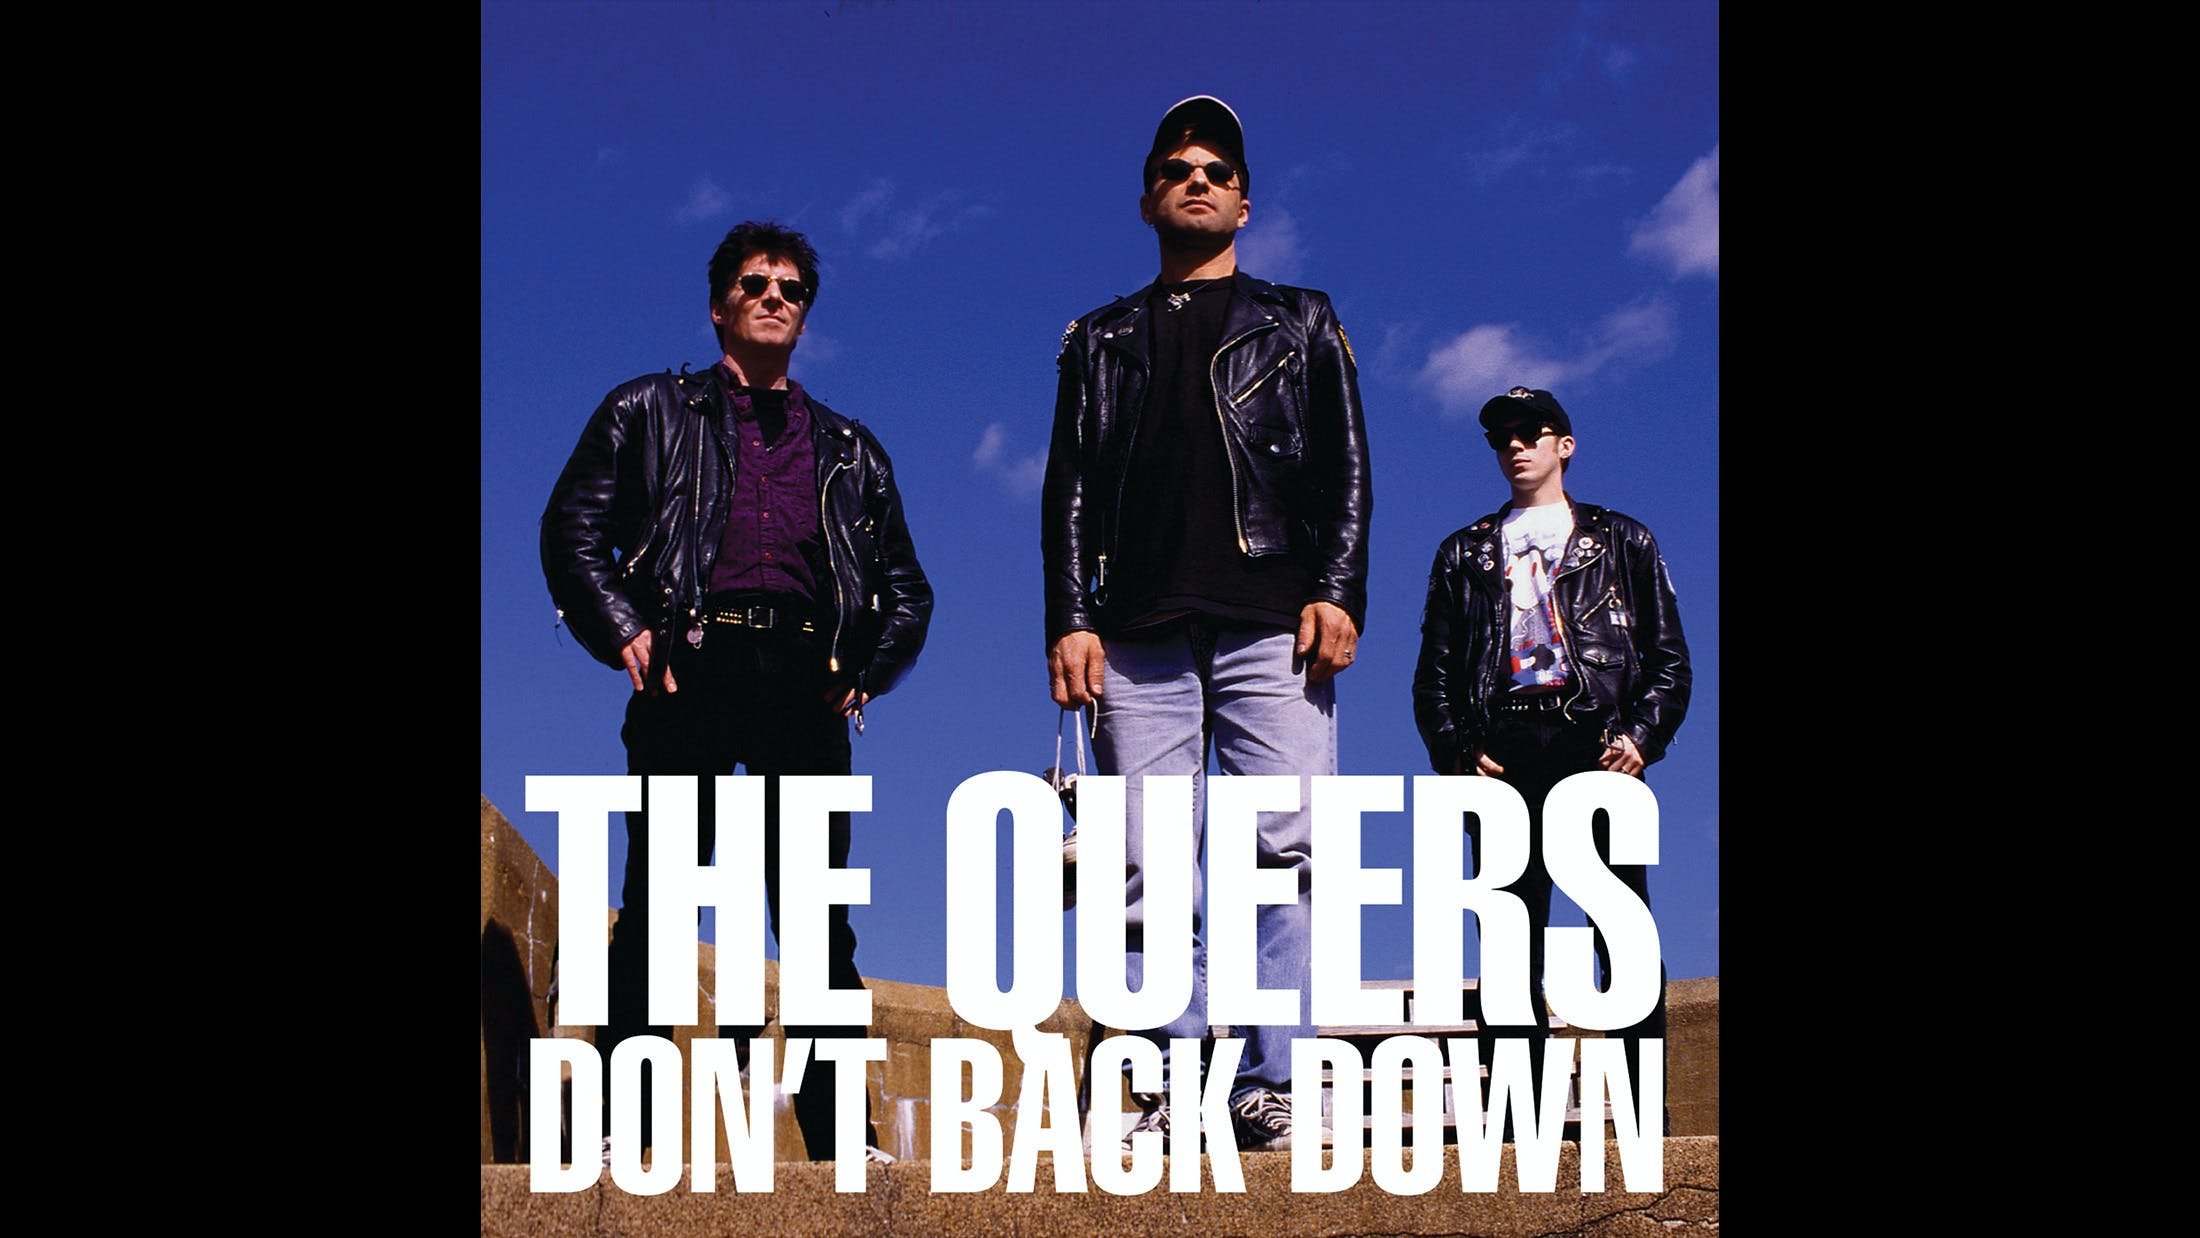 48. The Queers - Don't Back Down (1996)